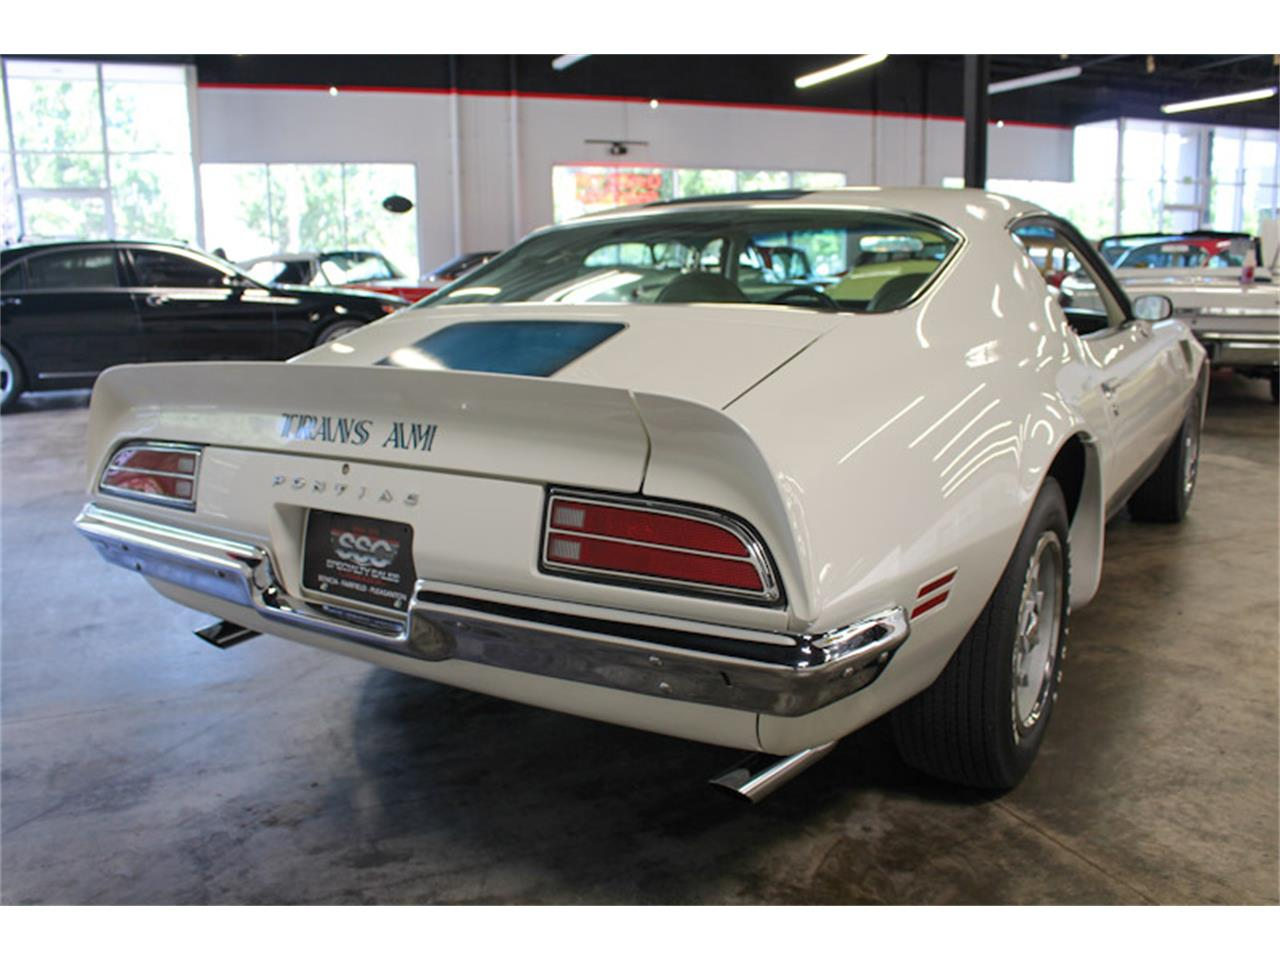 1972 Pontiac Firebird (CC-1248020) for sale in Fairfield, California